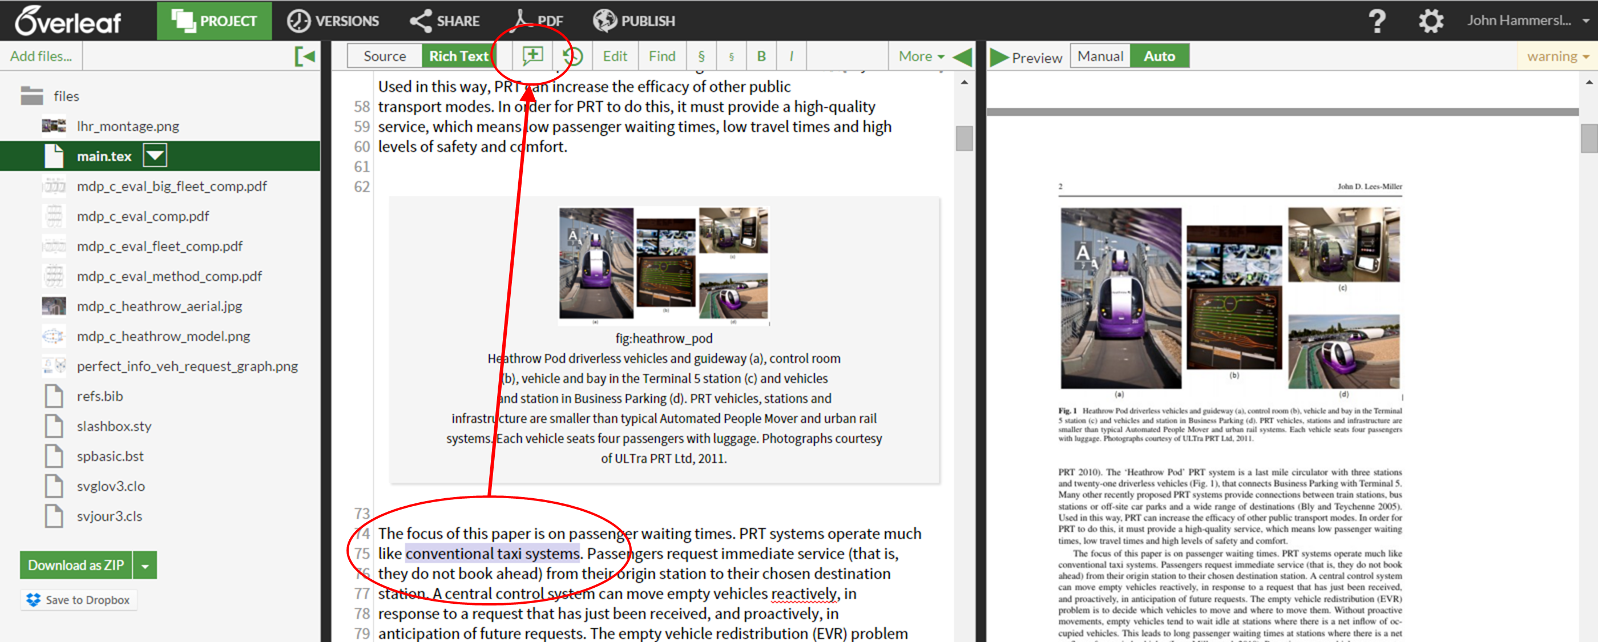 Overleaf selected text for comment screenshot